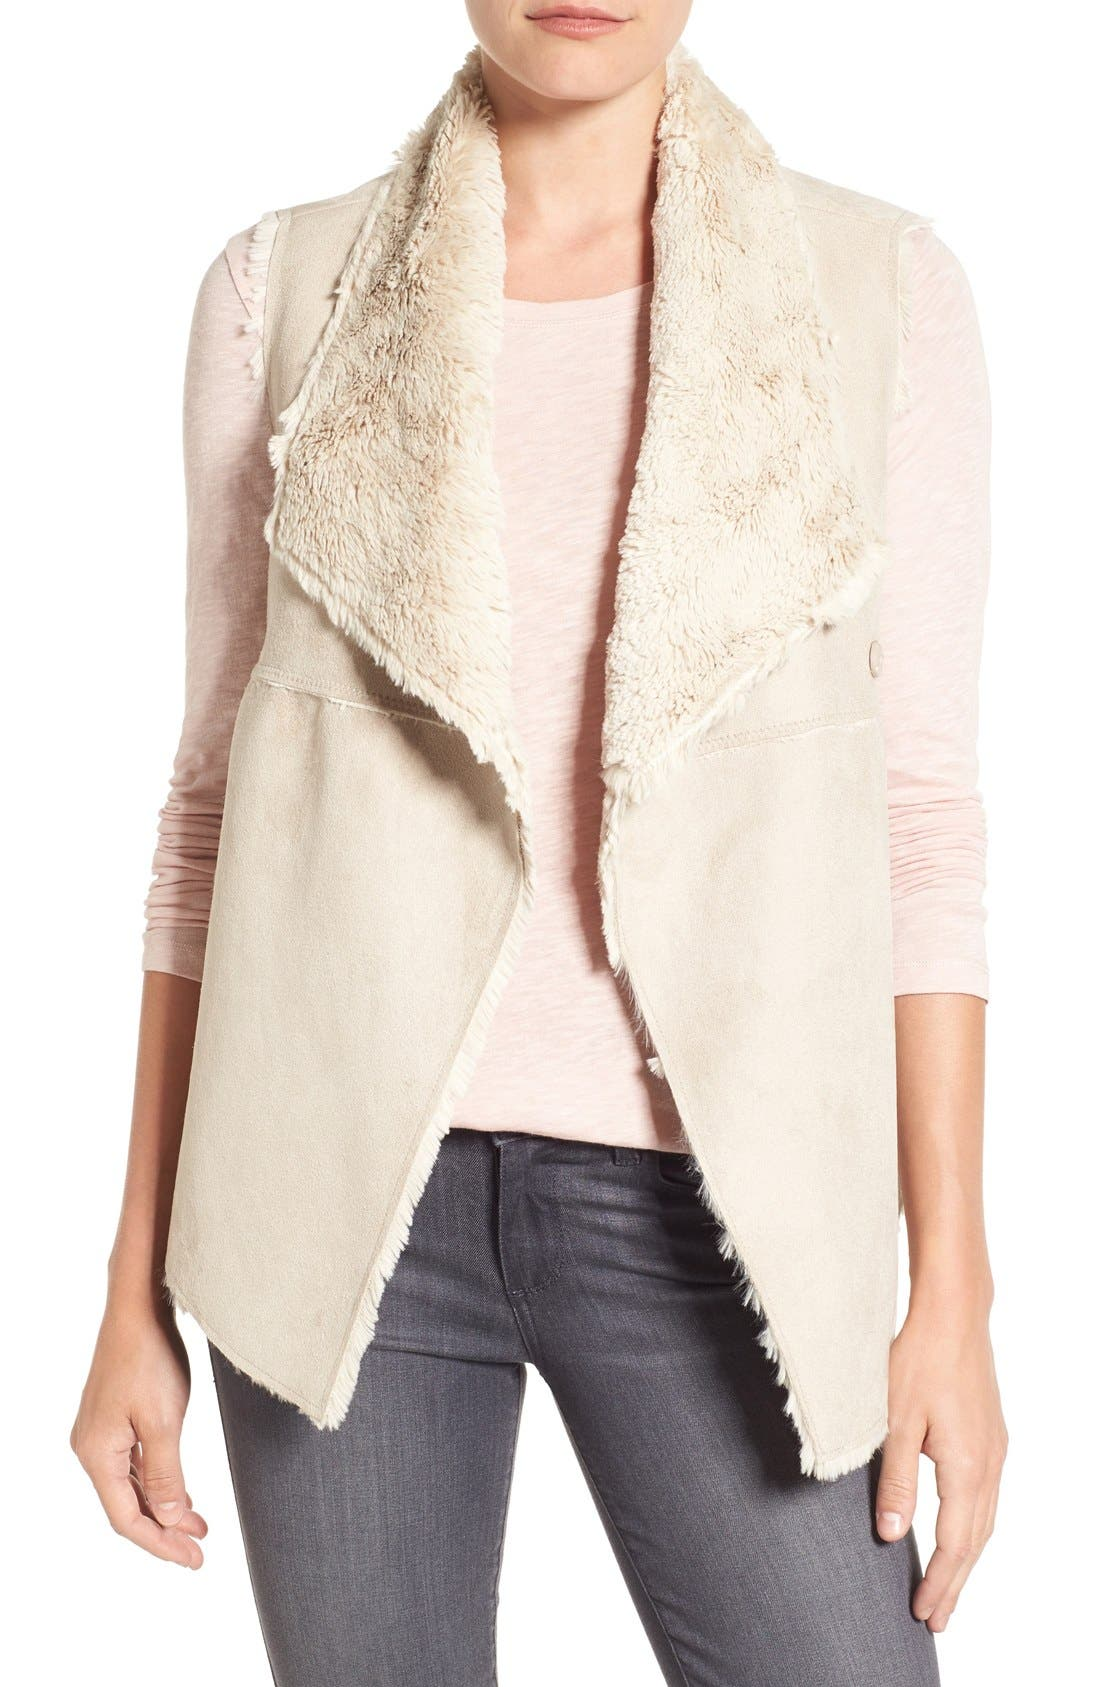 DYLAN 'Madison' Faux Shearling Vest, Main, color, 256